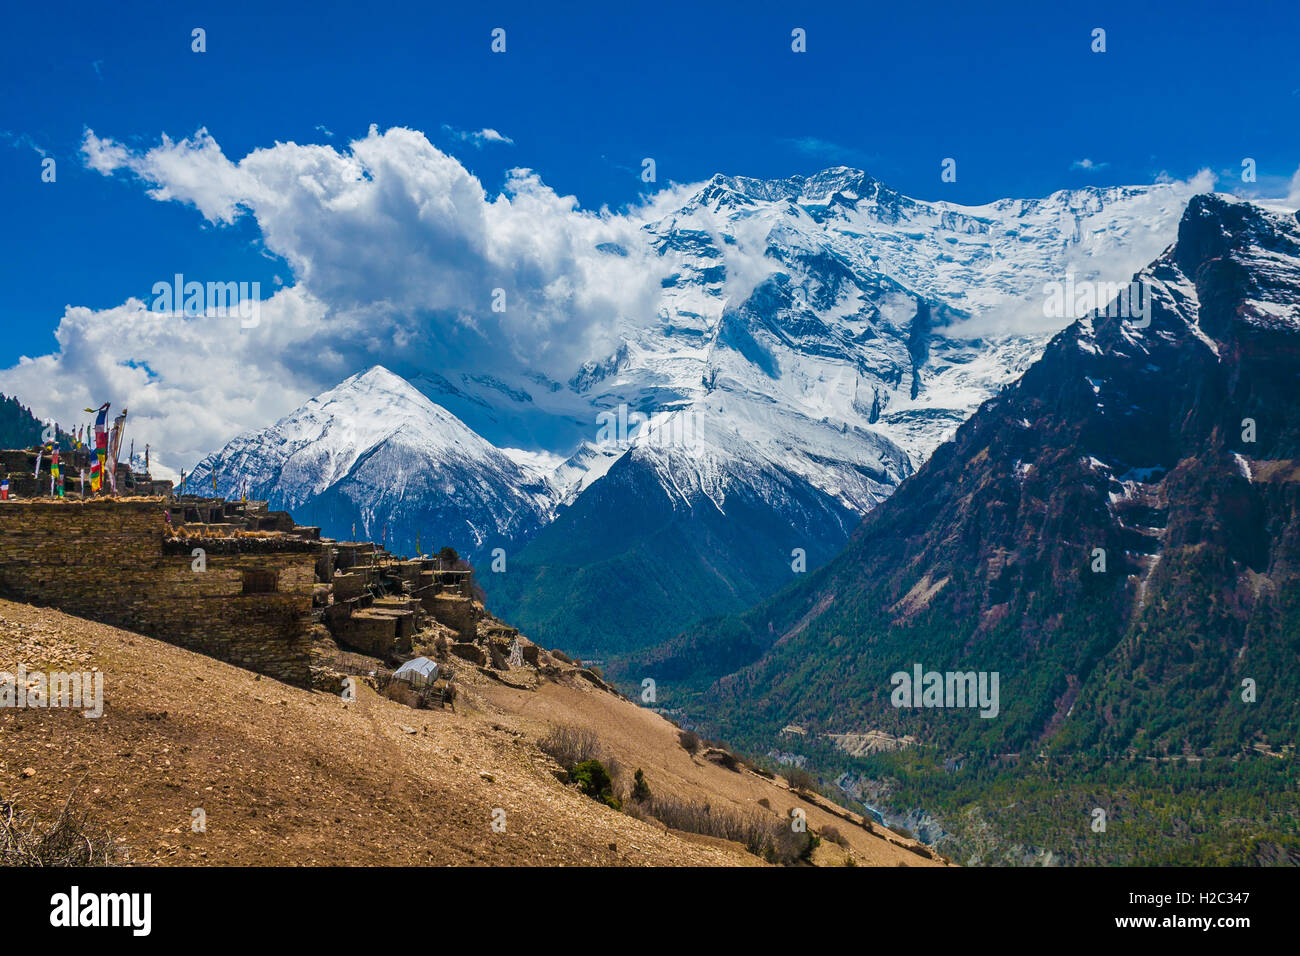 Landskape Photo Tracking Himallaya Vilage Side Hill.View Snow Nepal Mountans Background. Hikking Sport Travel. Horizontal Stock Photo